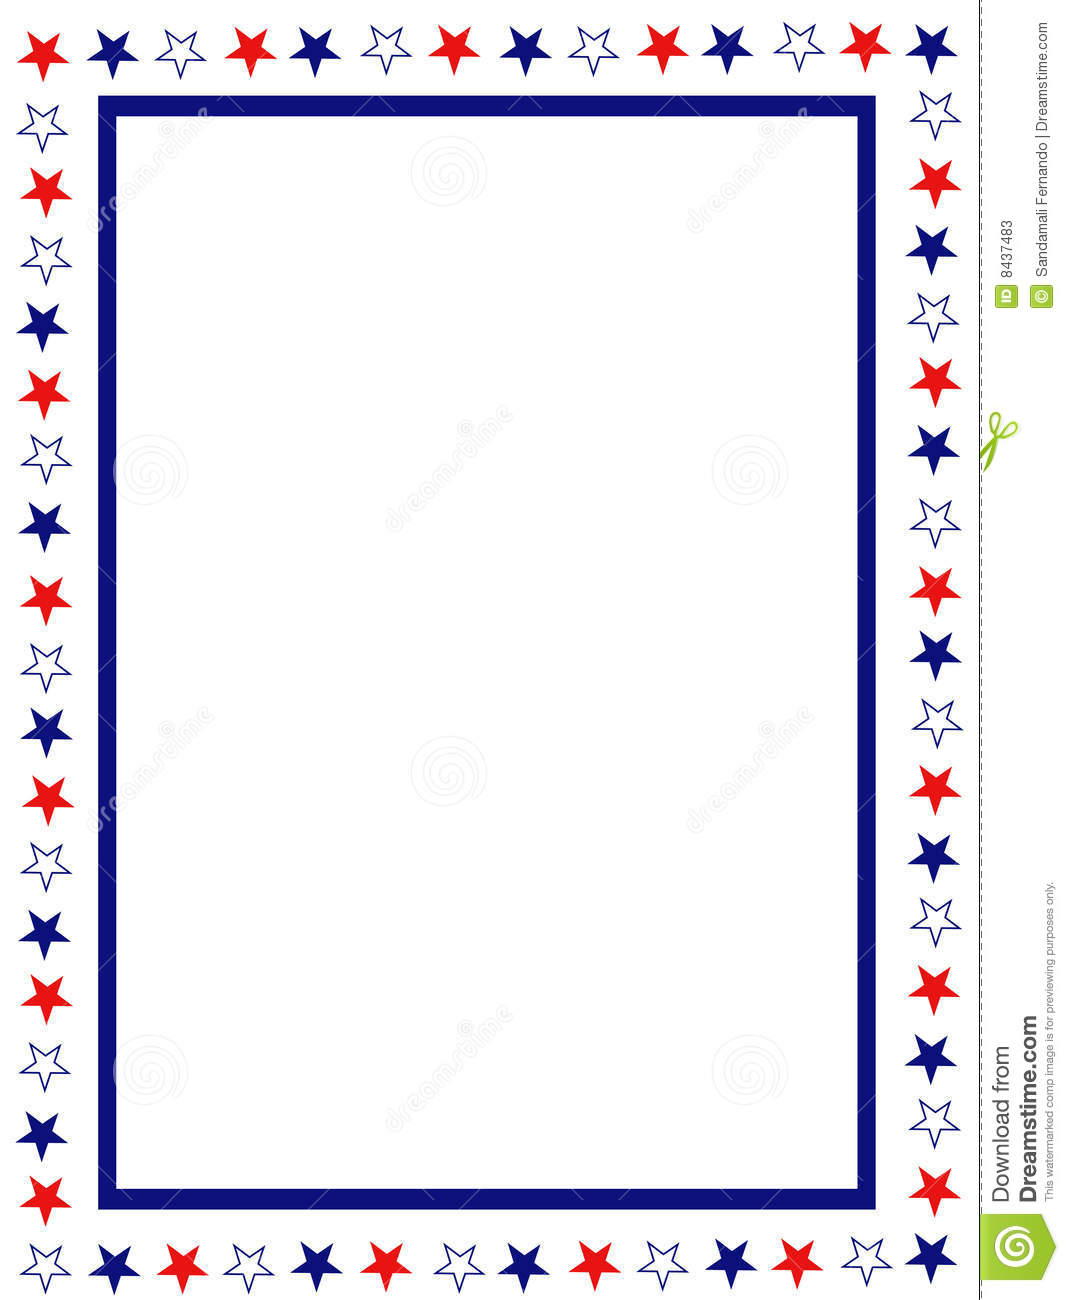 Free PNG Frames And Page Borders - 169694